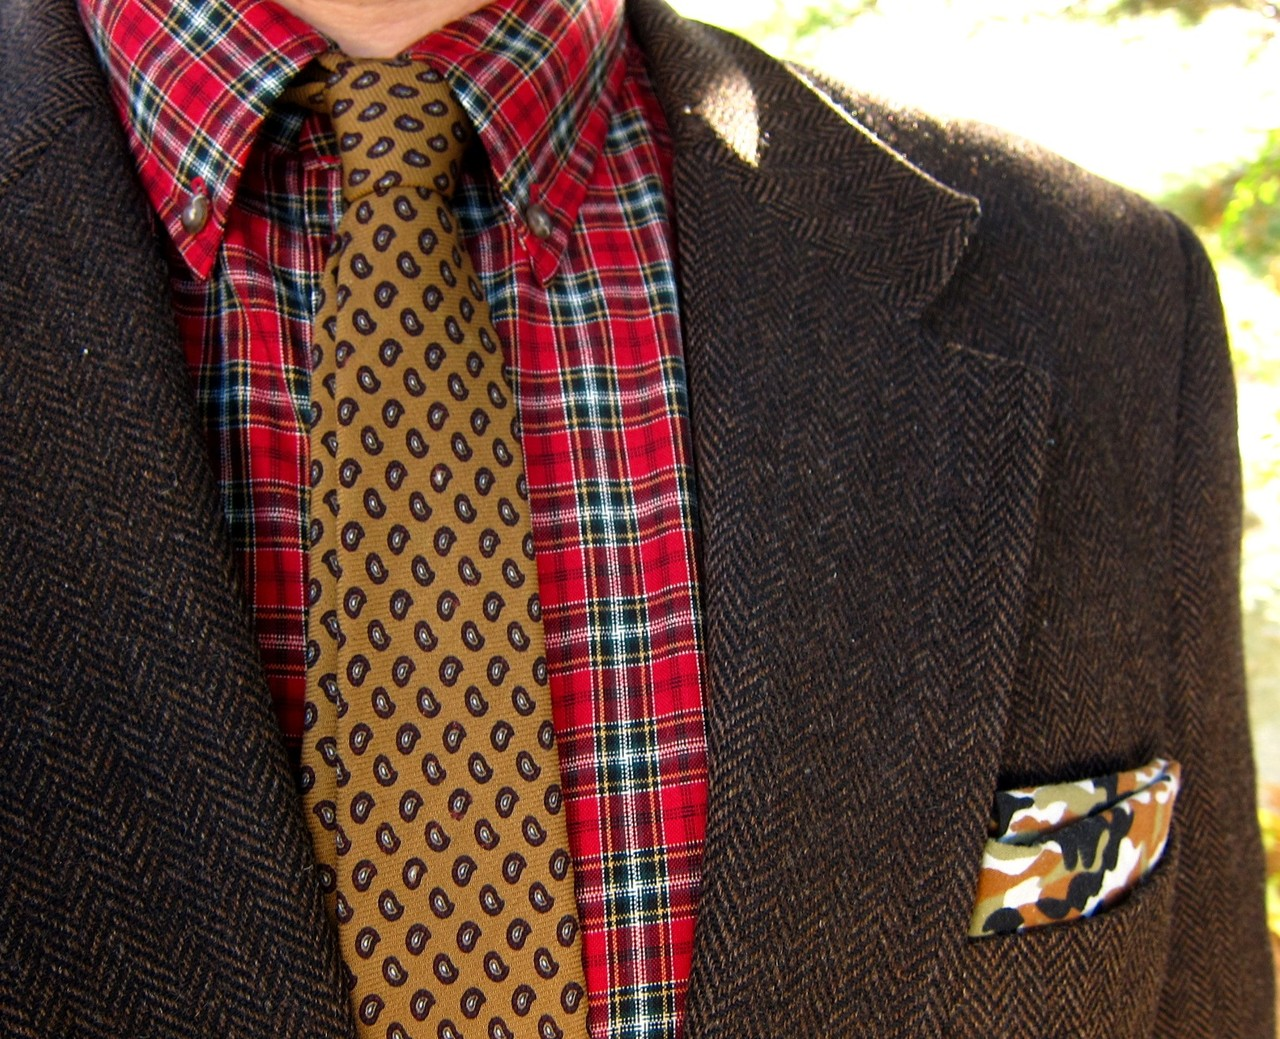 eightinhand :     Today: Liberty paisley wool challis necktie, Pendleton wool tartan button-down, brown herringbone tweed jacket, printed cotton camouflage bandana. All vintage.